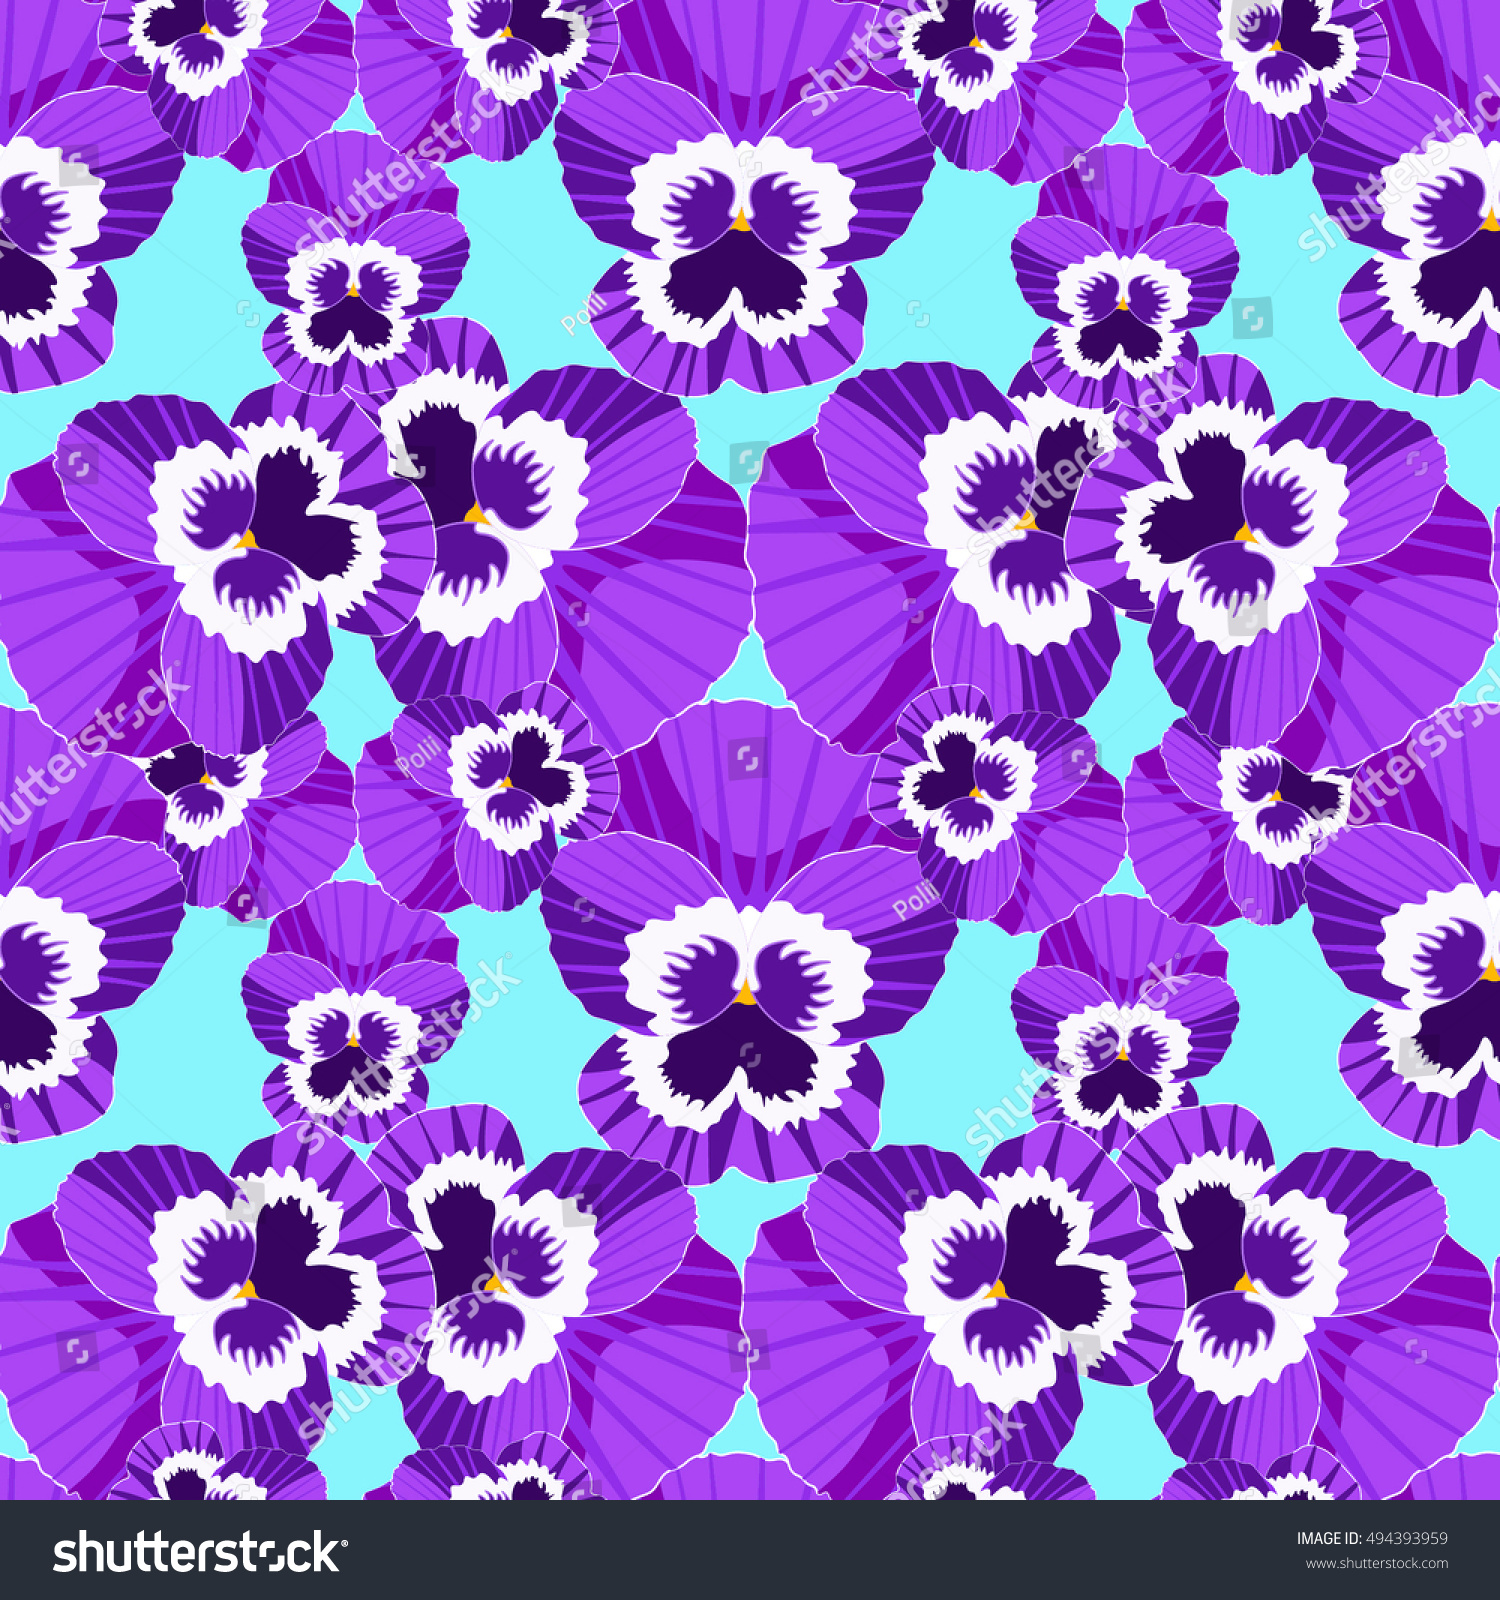 Seamless Pattern Violet Flowers Of Pansies On A Blue Background